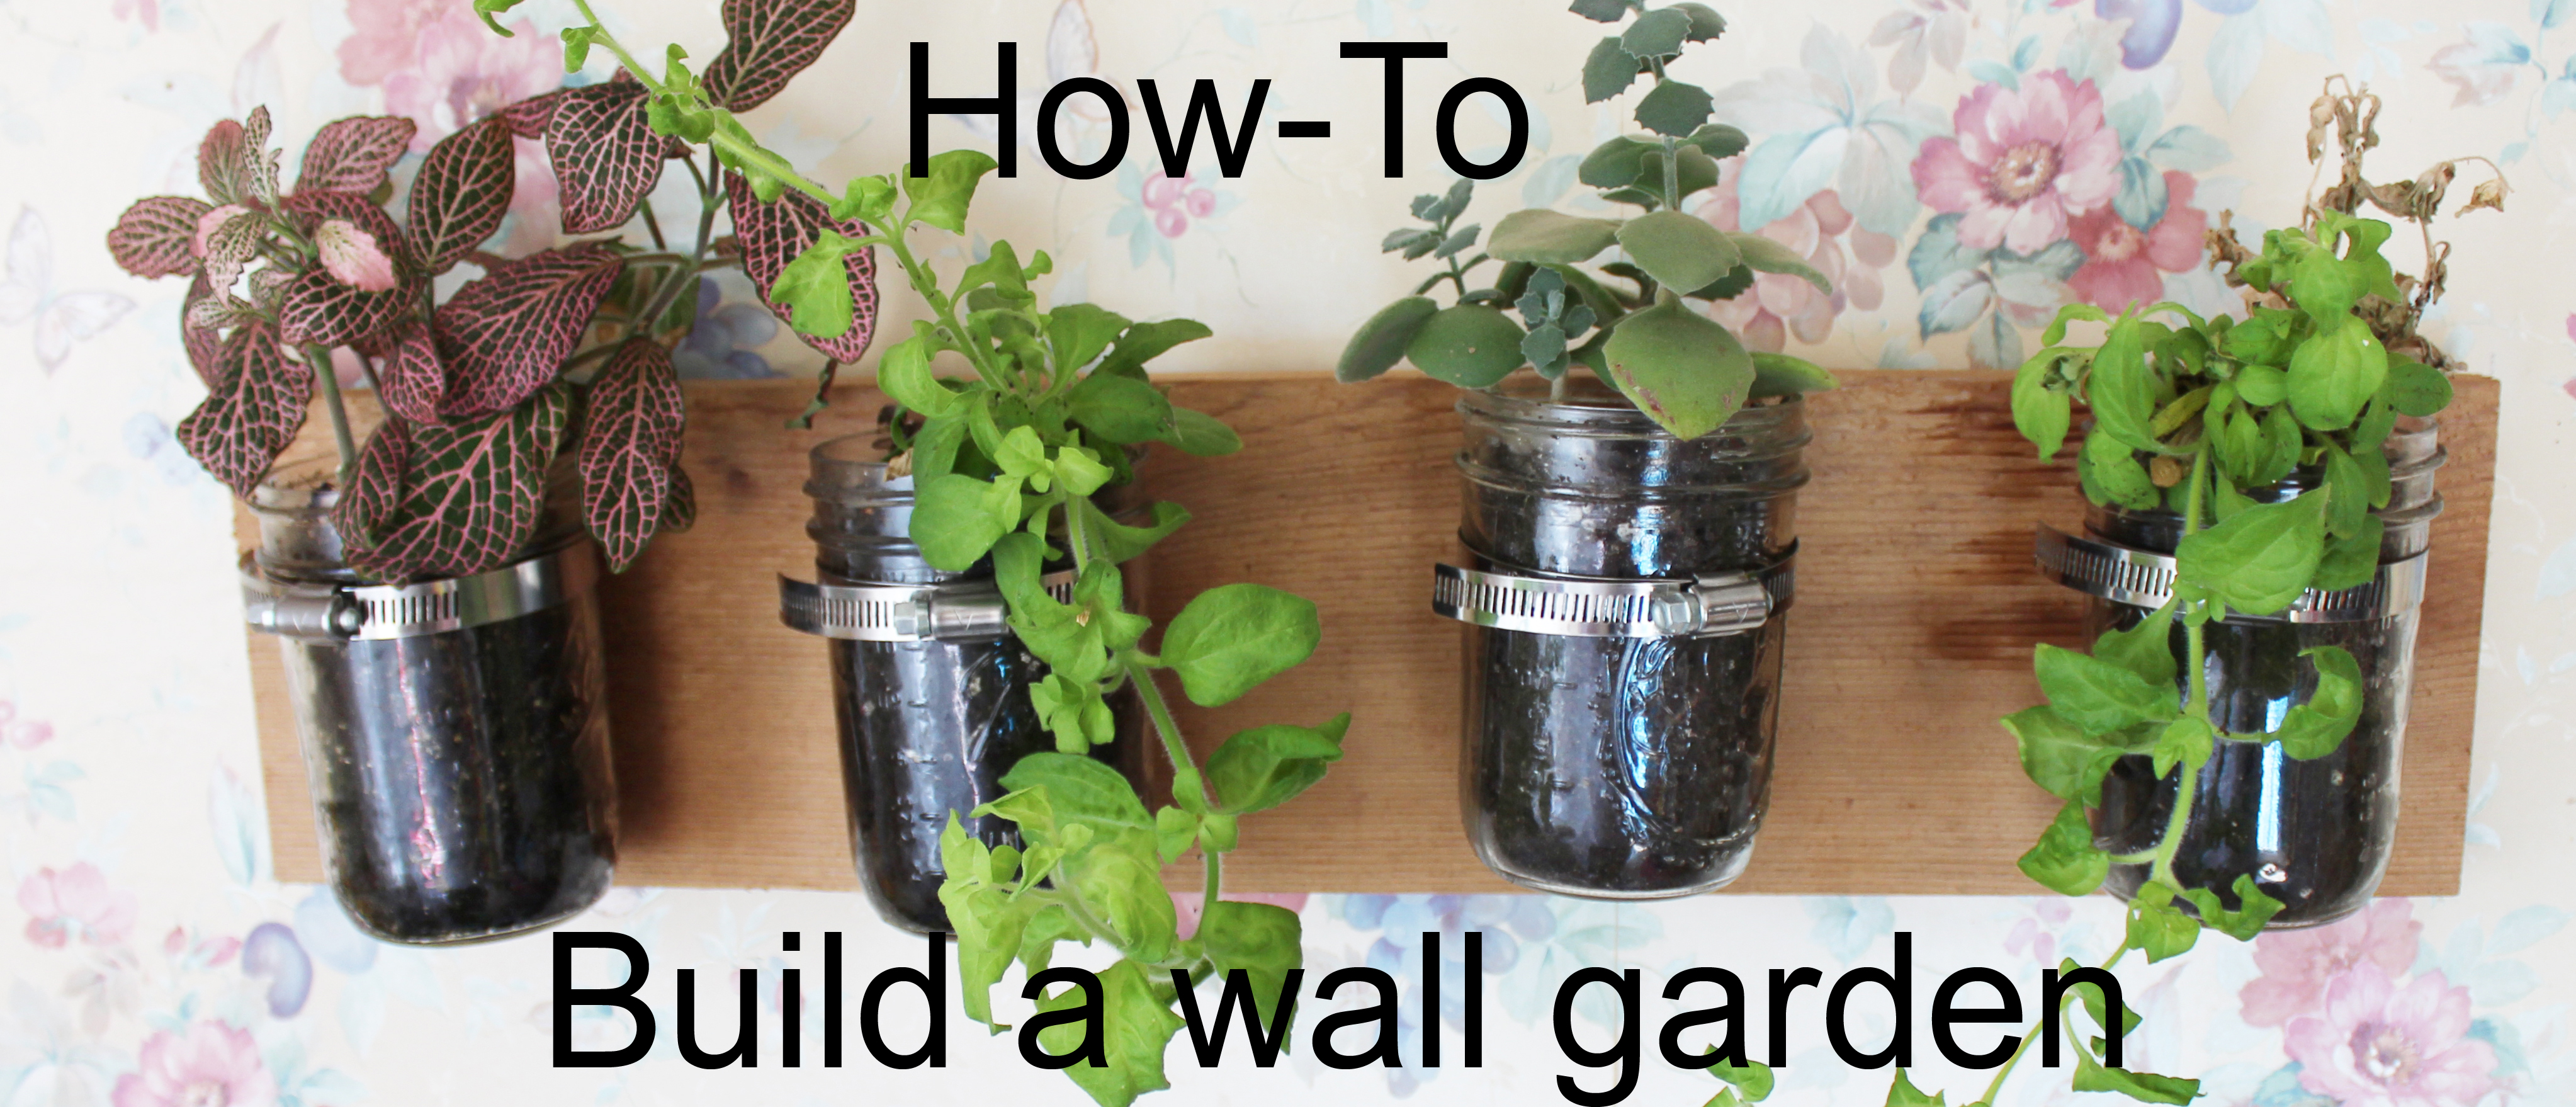 How to build an indoor wall garden dads Indoor living wall herb garden